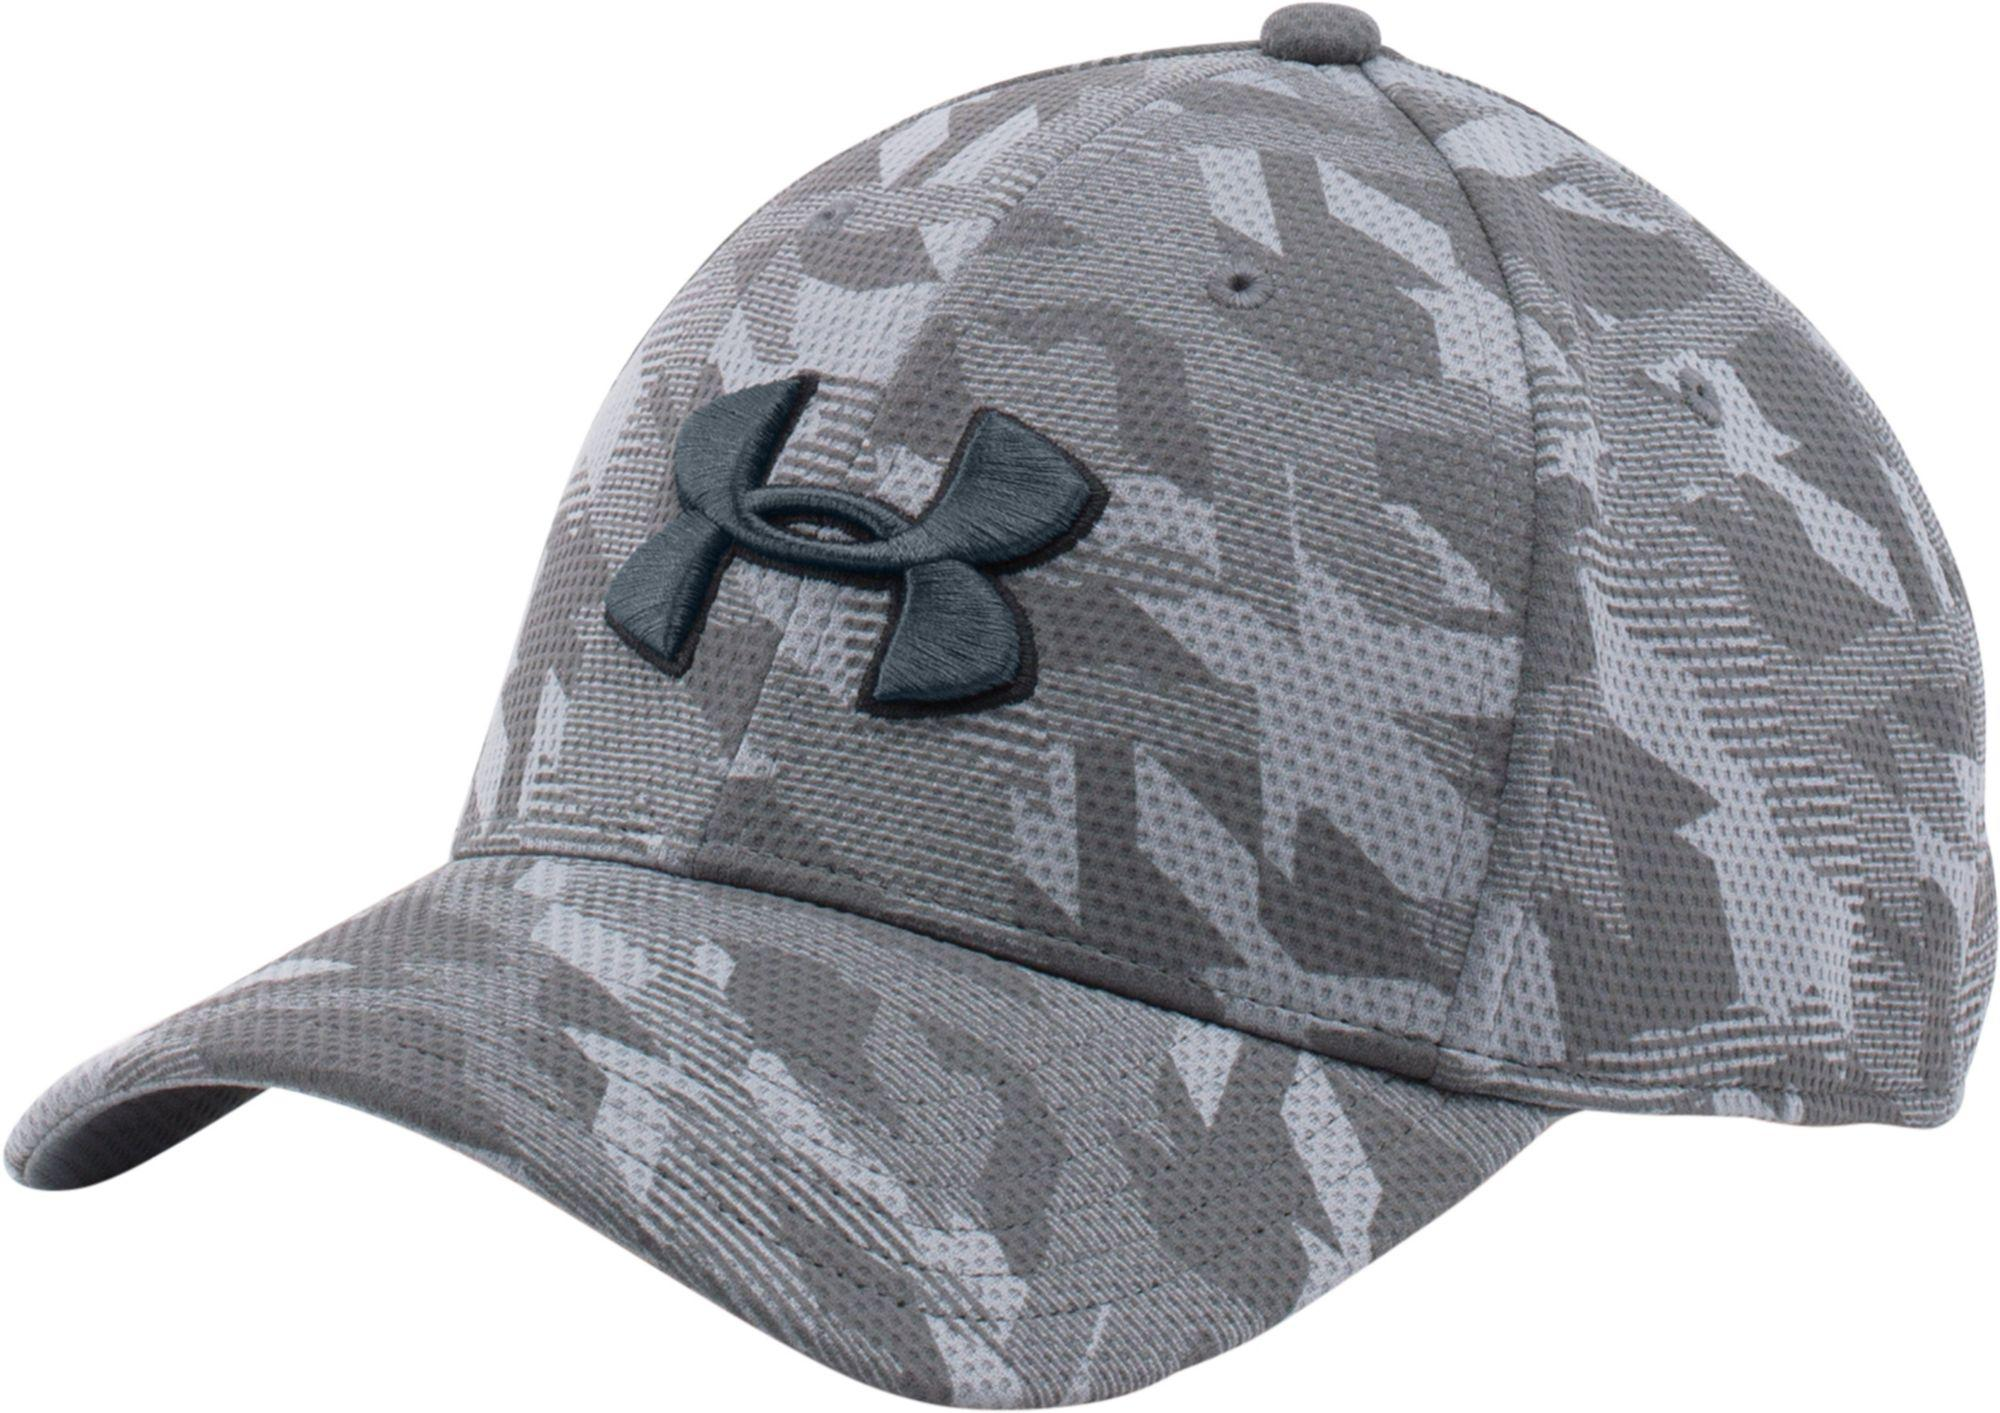 b1a0fc63dd3 Lyst - Under Armour Printed Blitzing Stretch Fit Hat in Gray for Men